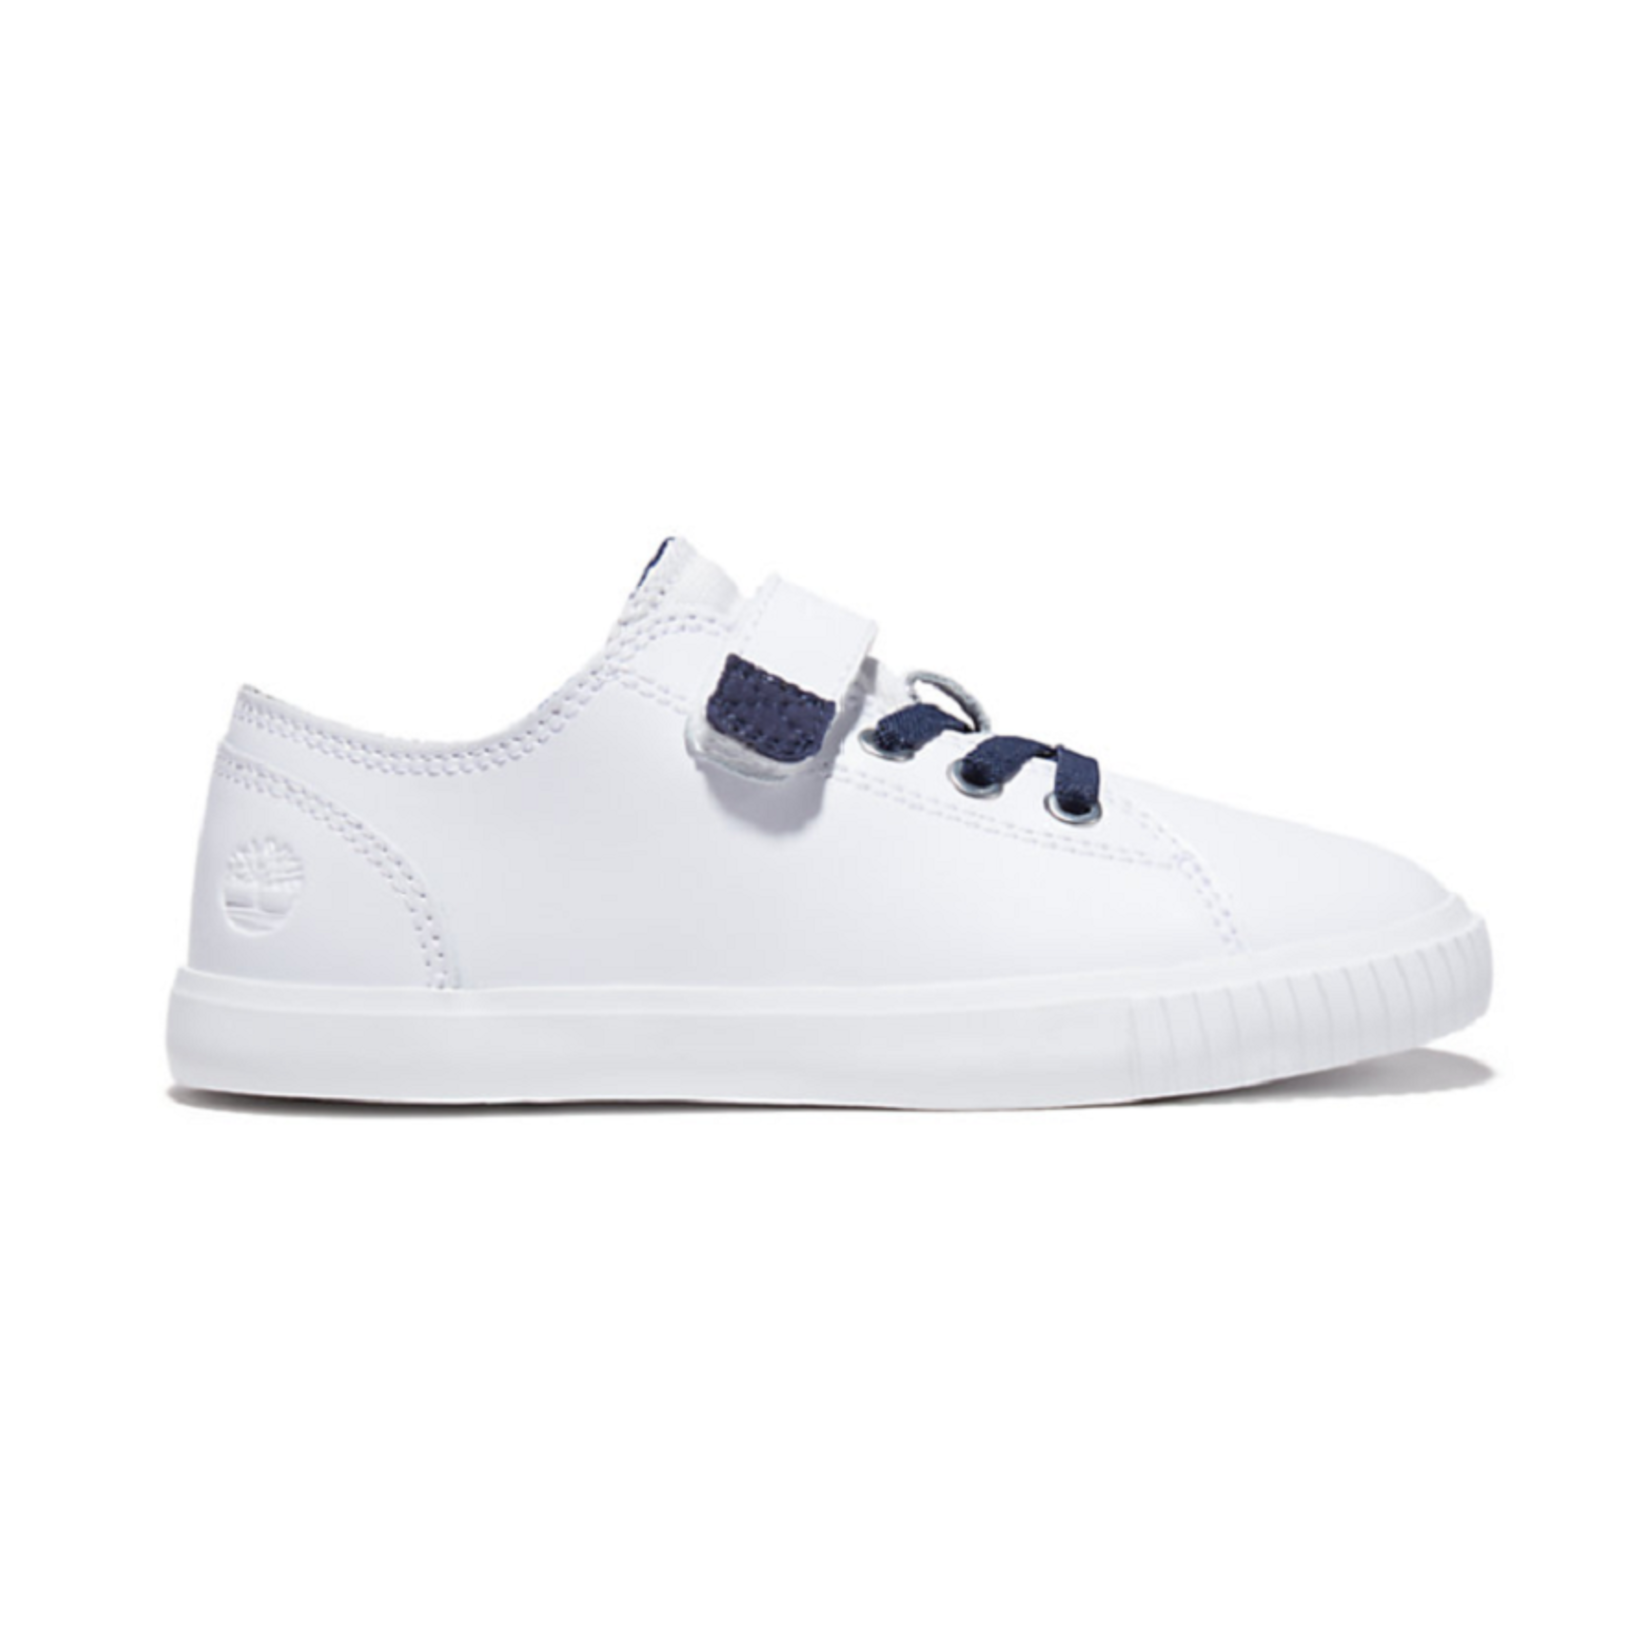 Timberland NEWPORT BAY SNEAKER FOR TODDLER IN WHITE/BLUE